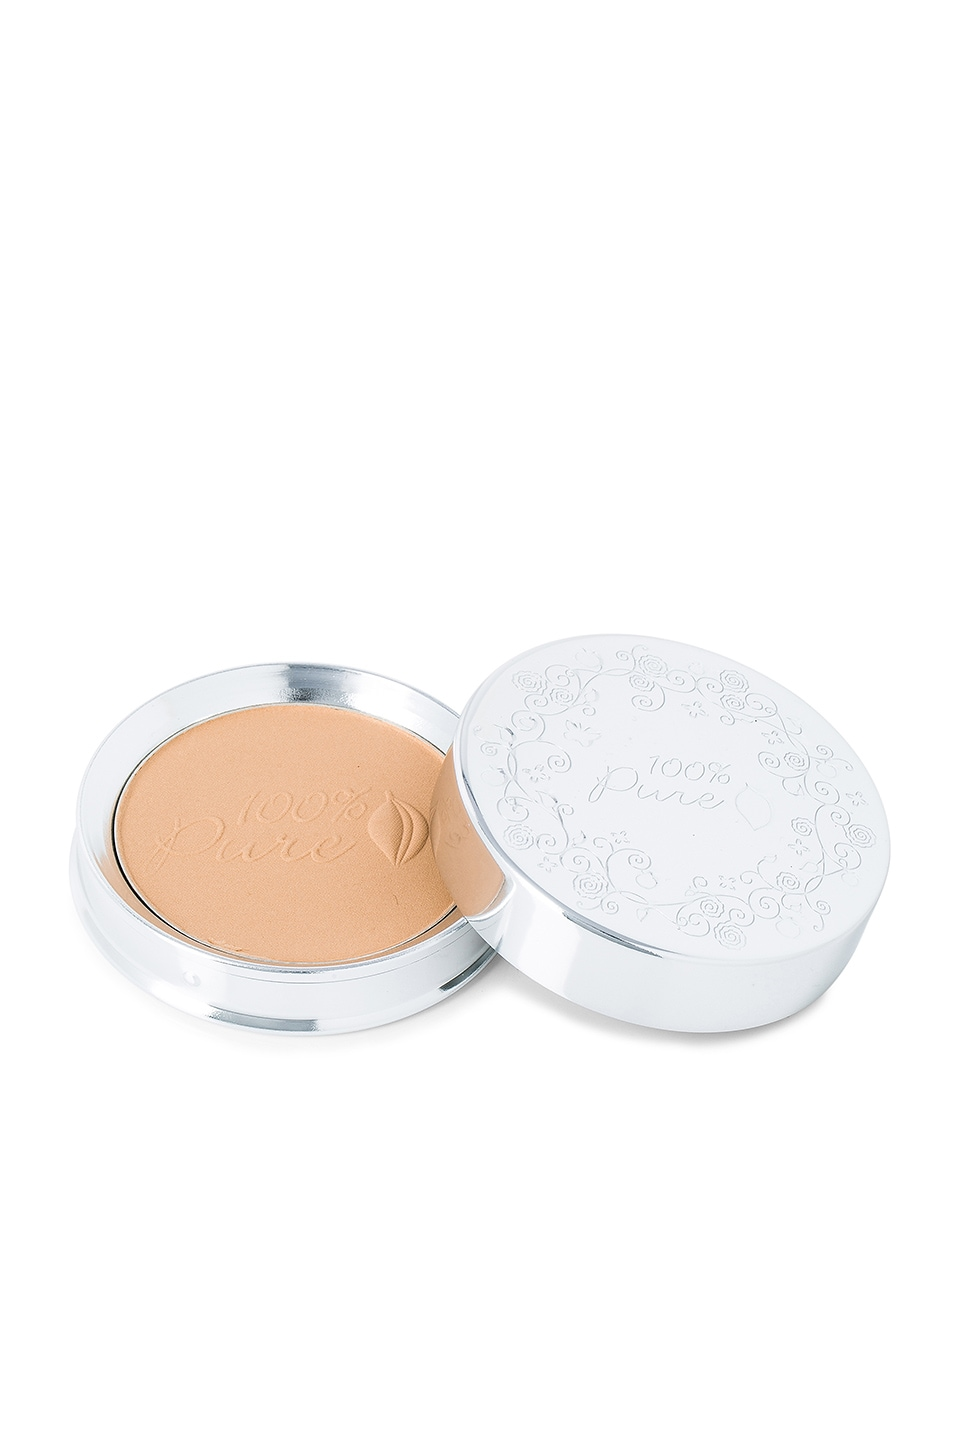 100% PURE Healthy Face Powder Foundation W/ Sun Protection in Beauty: Na